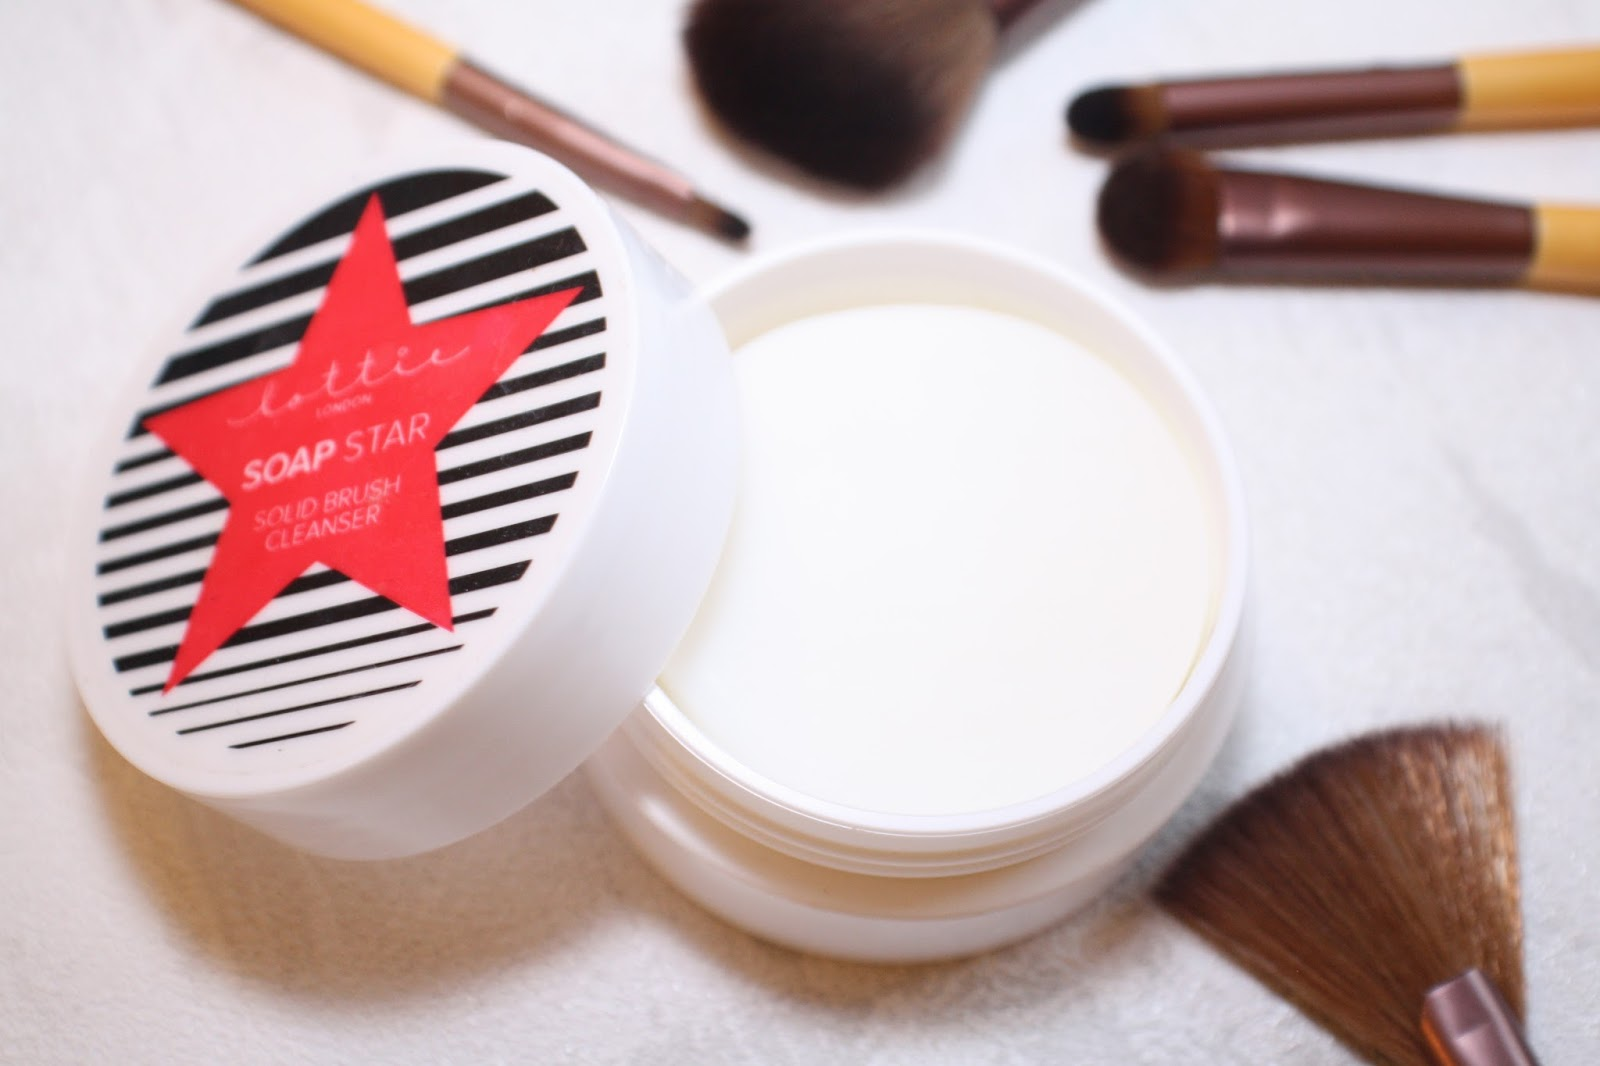 lebellelavie - Lottie Soap Star Solid Brush Cleanser